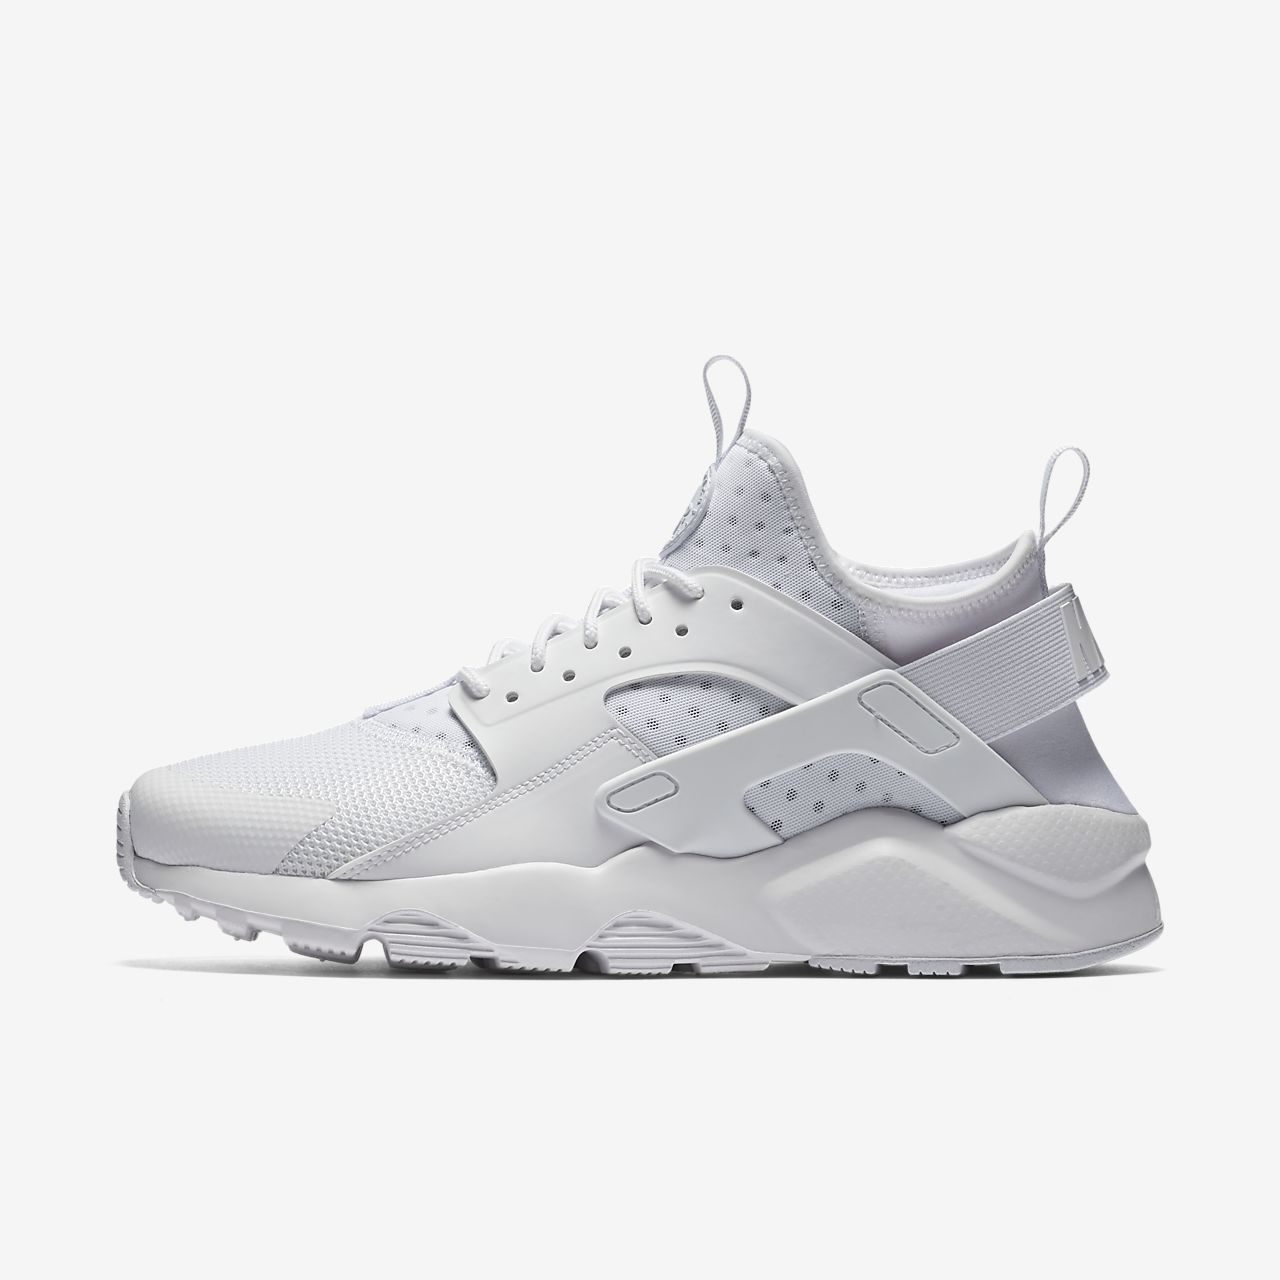 a73416e4f6f50 Nike Air Huarache Ultra Men s Shoe. Nike.com CA